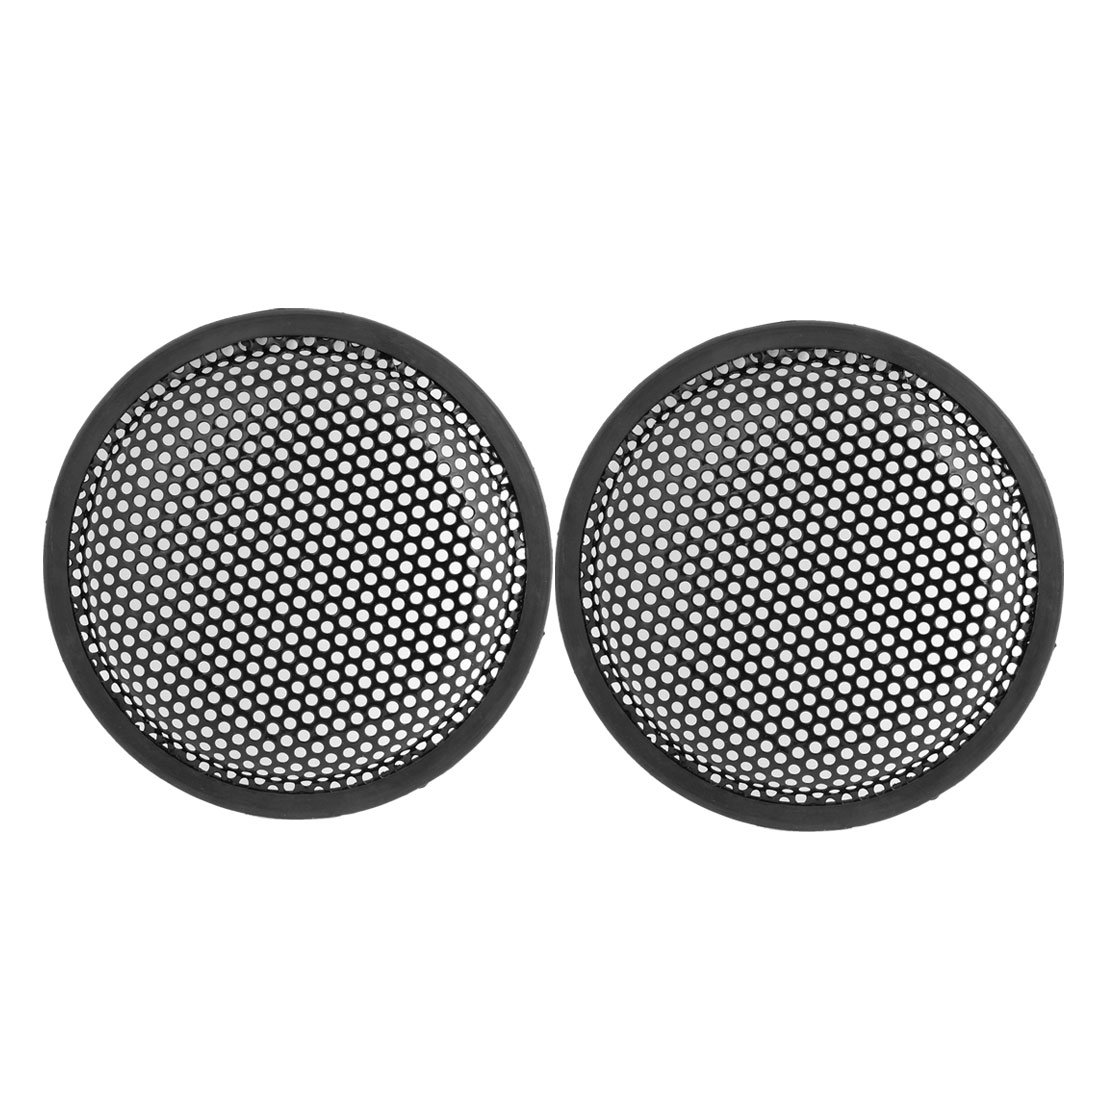 sourcingmap® 6.6' Dia Metal Mesh Round Car Woofer Cover Speaker Grill Black 2 Pcs sourcing map a14031500ux0093